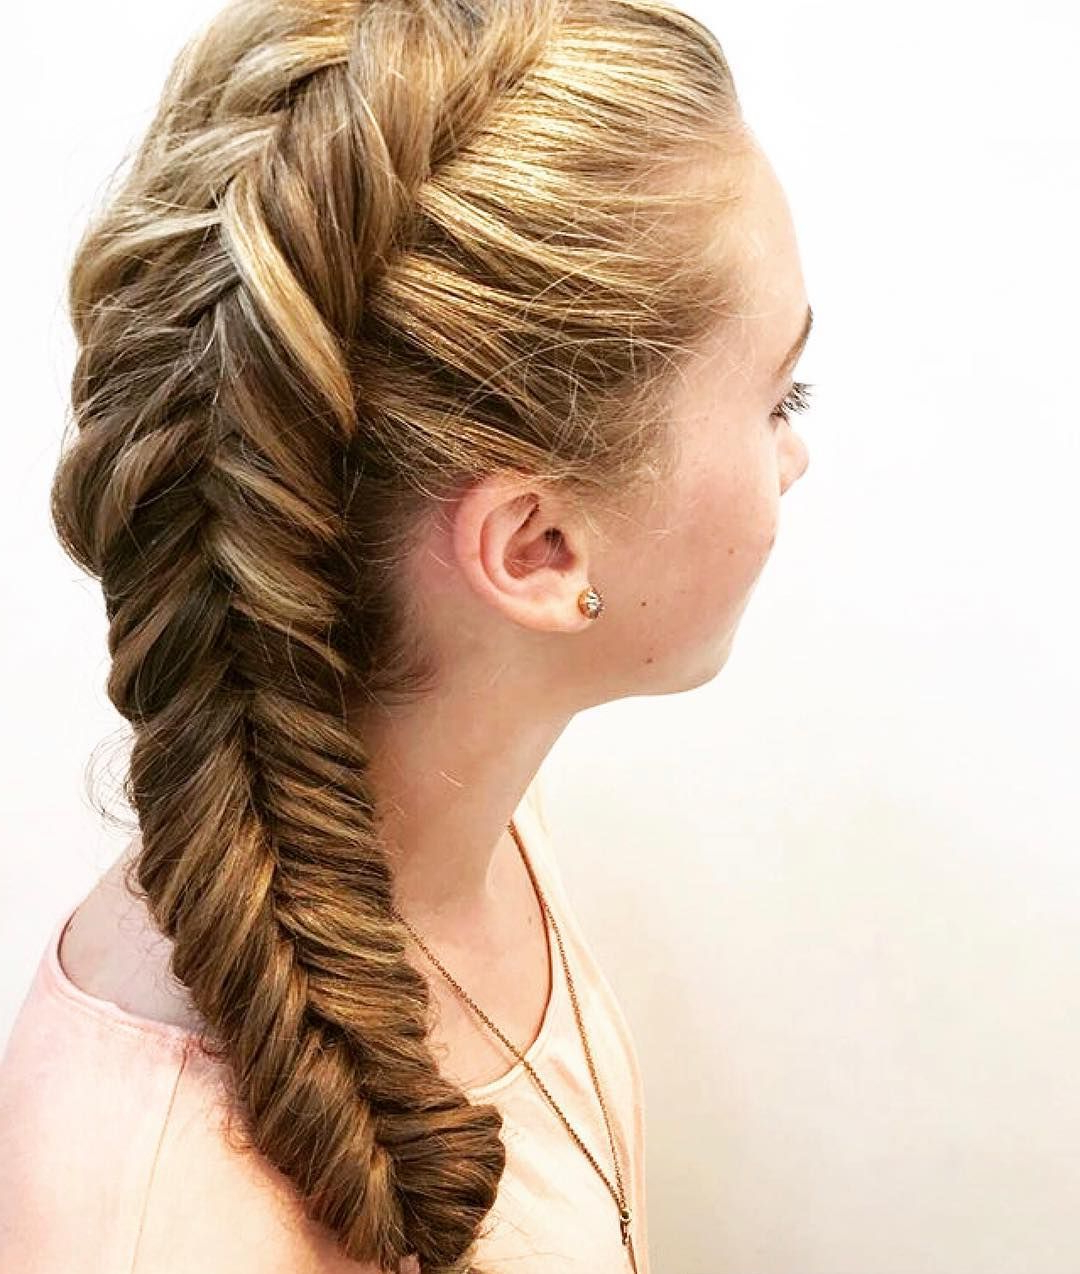 Famous Double Rapunzel Side Rope Braid Hairstyles Intended For 55 Trendy Braided Hairstyle That Are Style Statement (View 9 of 20)